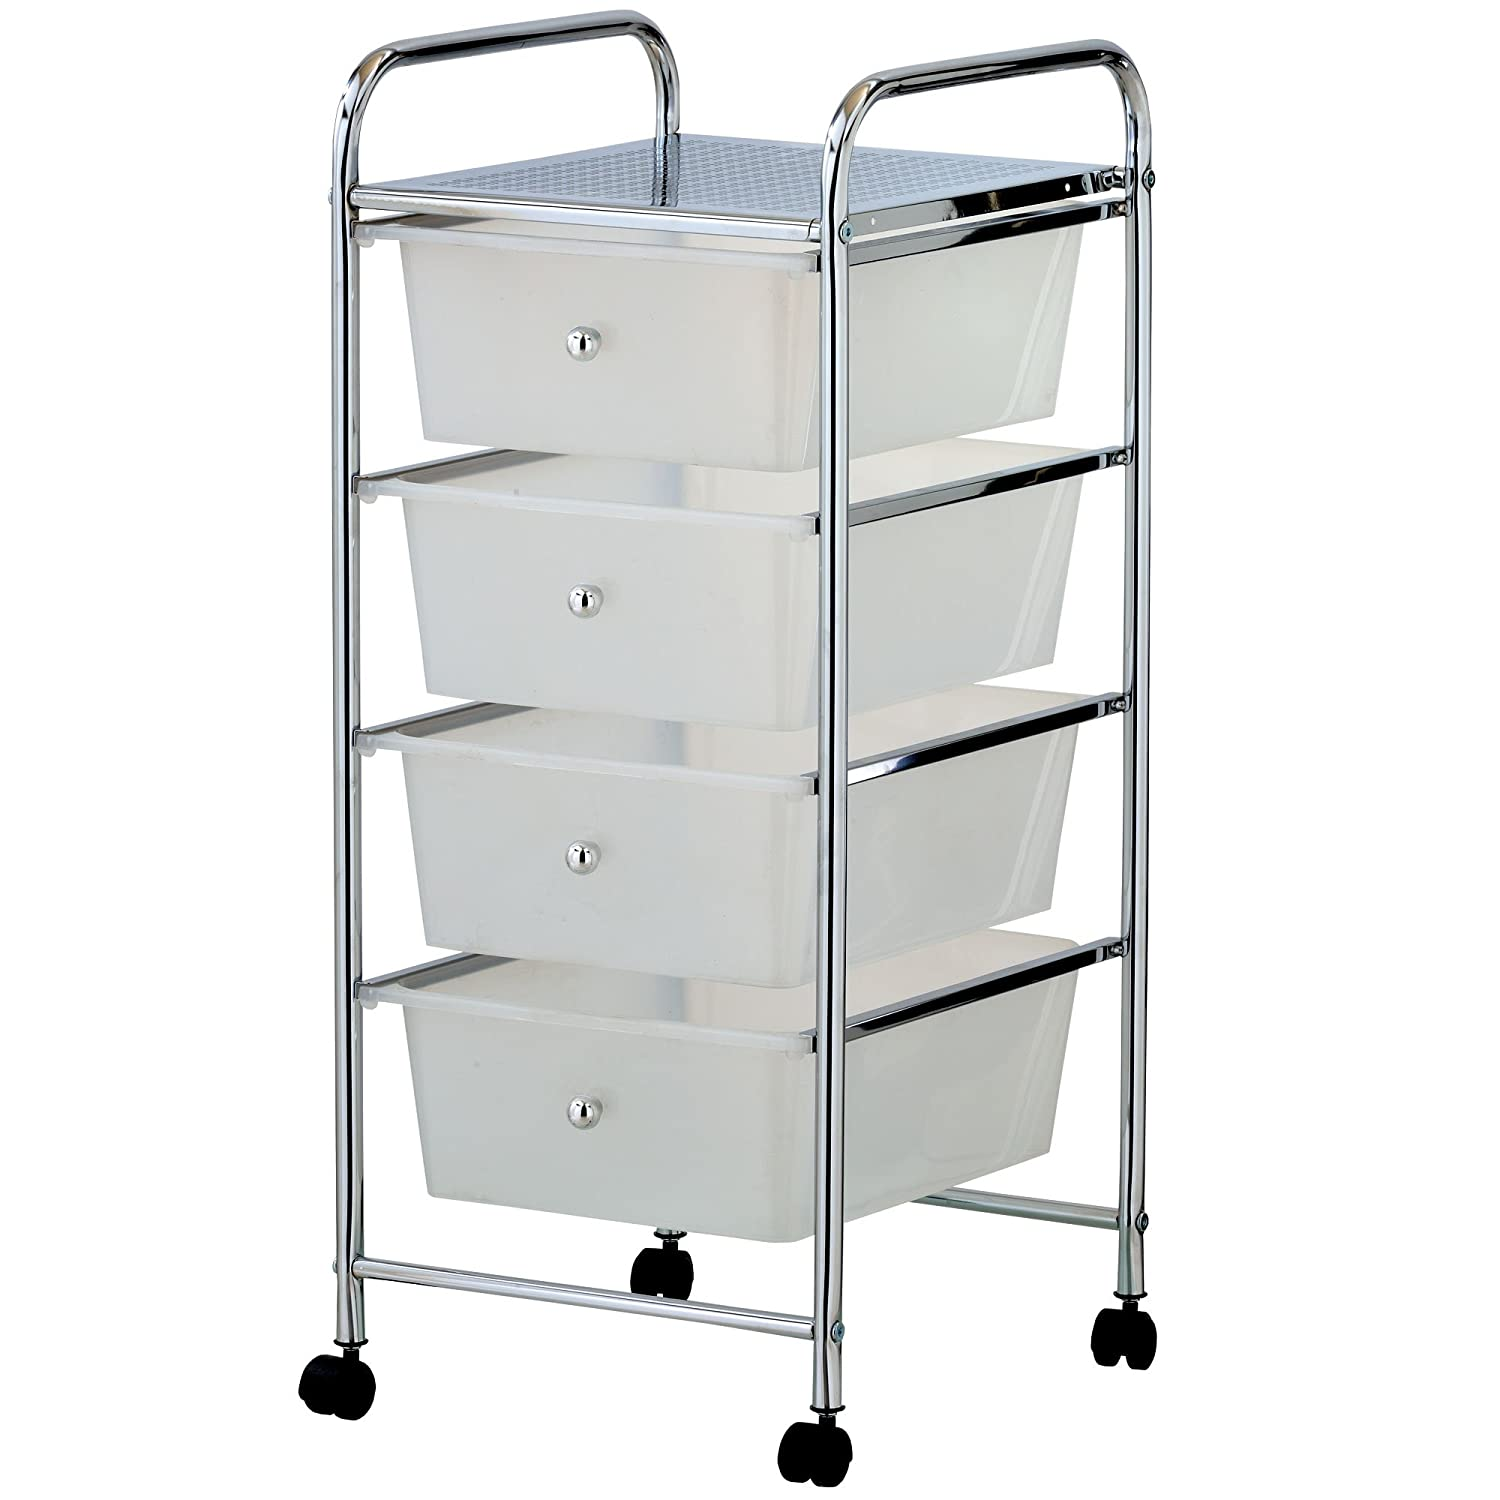 wheels papers storage with organizer rolling cart collapsible cubes brakes drawers clothes and product black tools for maidmax drawer